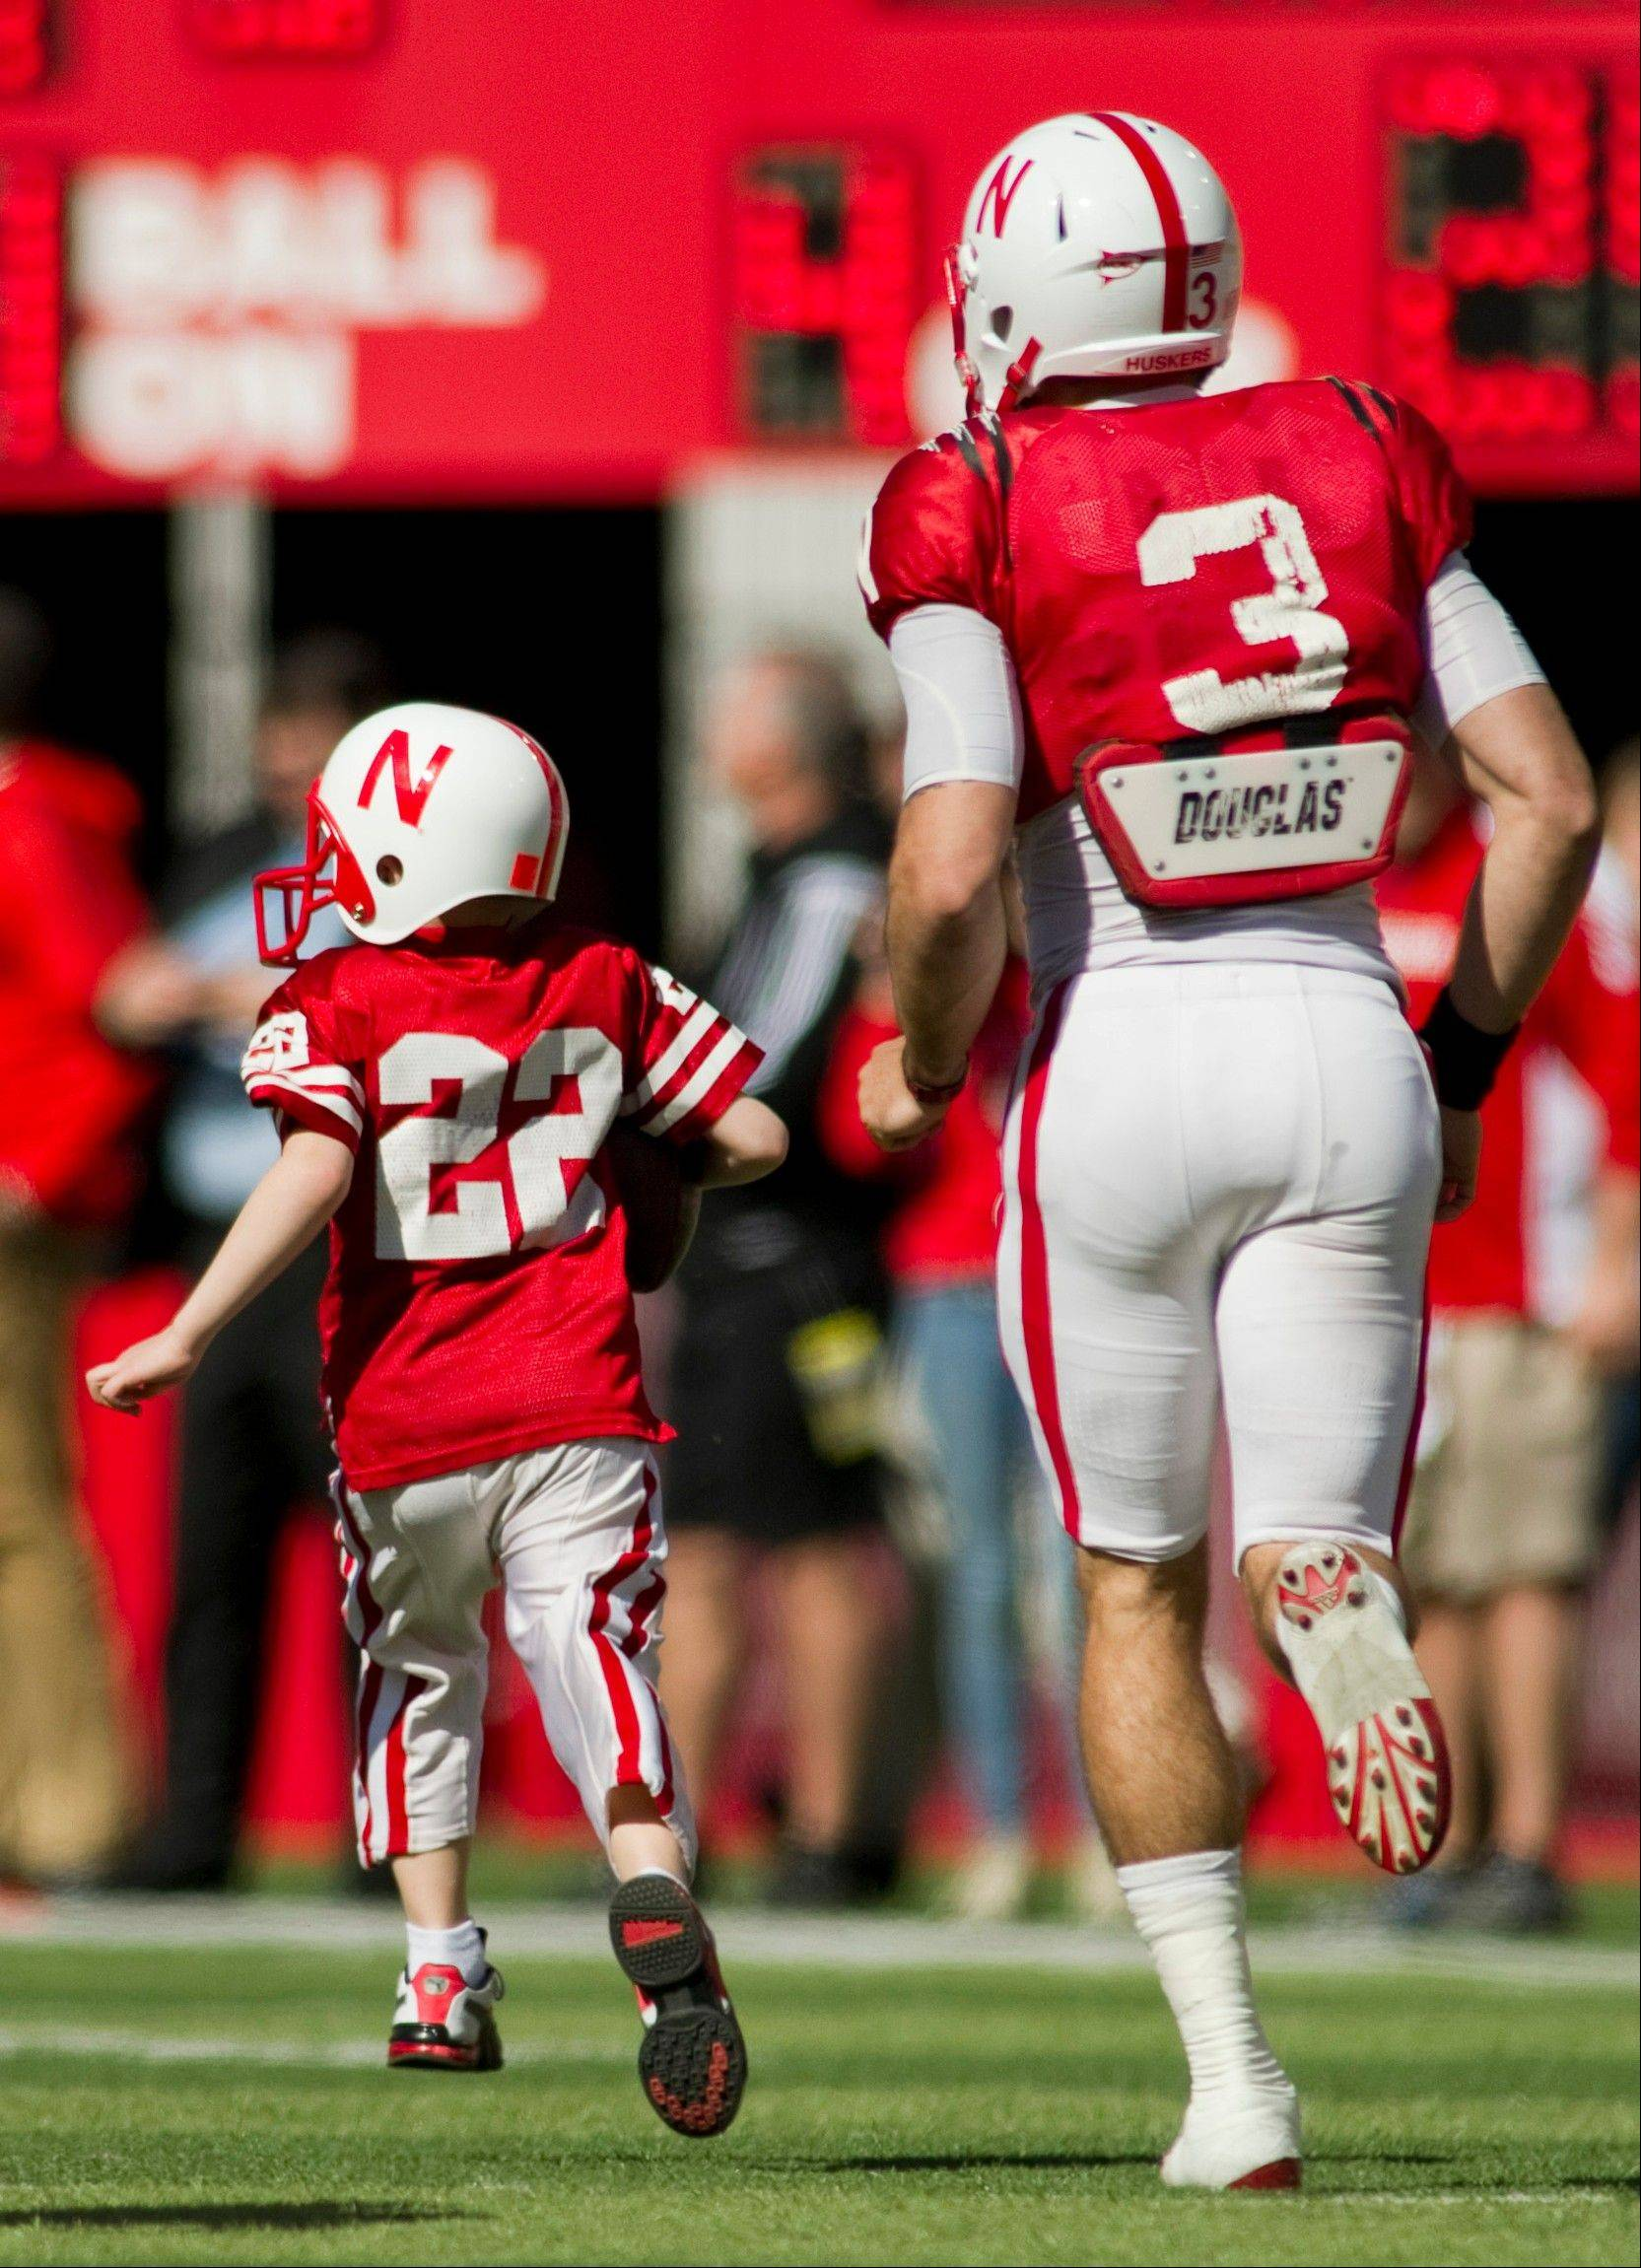 Cancer in remission for Nebraska boy who made TD run